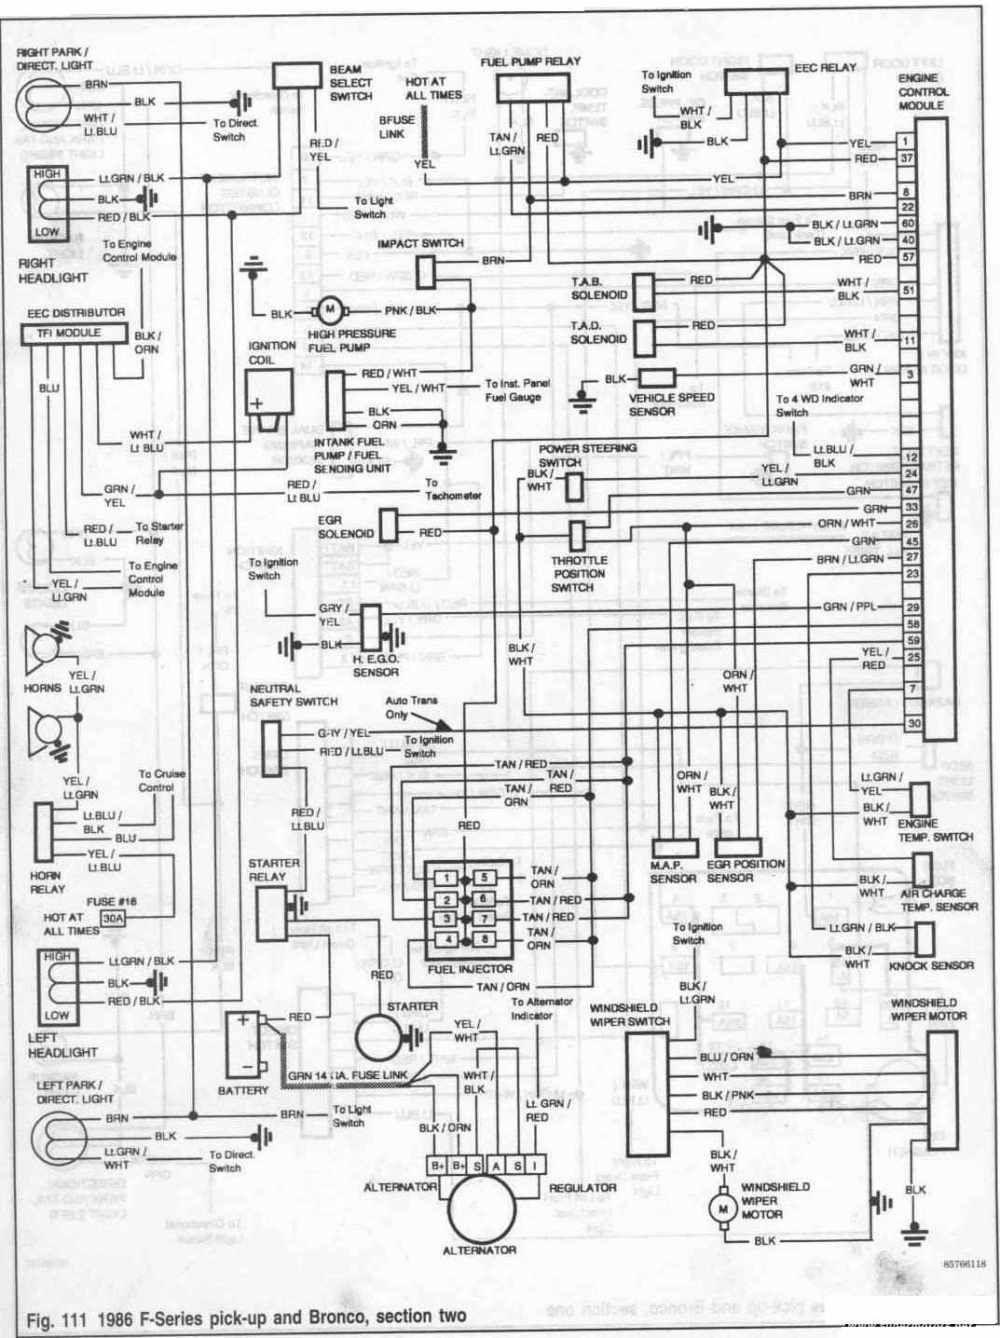 medium resolution of 1986 f250 fuse block wiring diagram wiring diagram schematics 86 f250 fuse box wiring